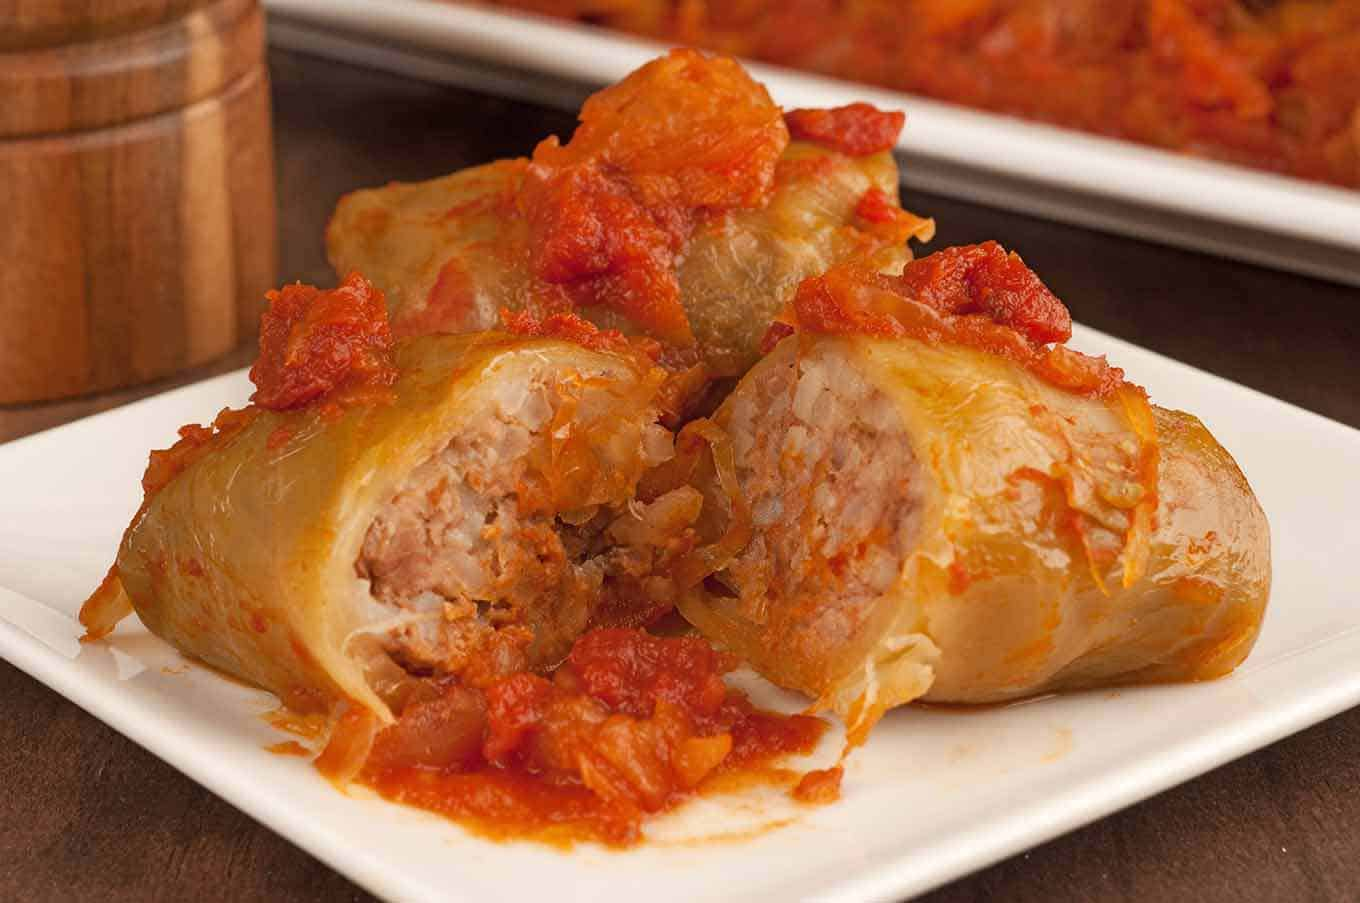 Hungarian stuffed cabbage roll cut in half, topped with sauce